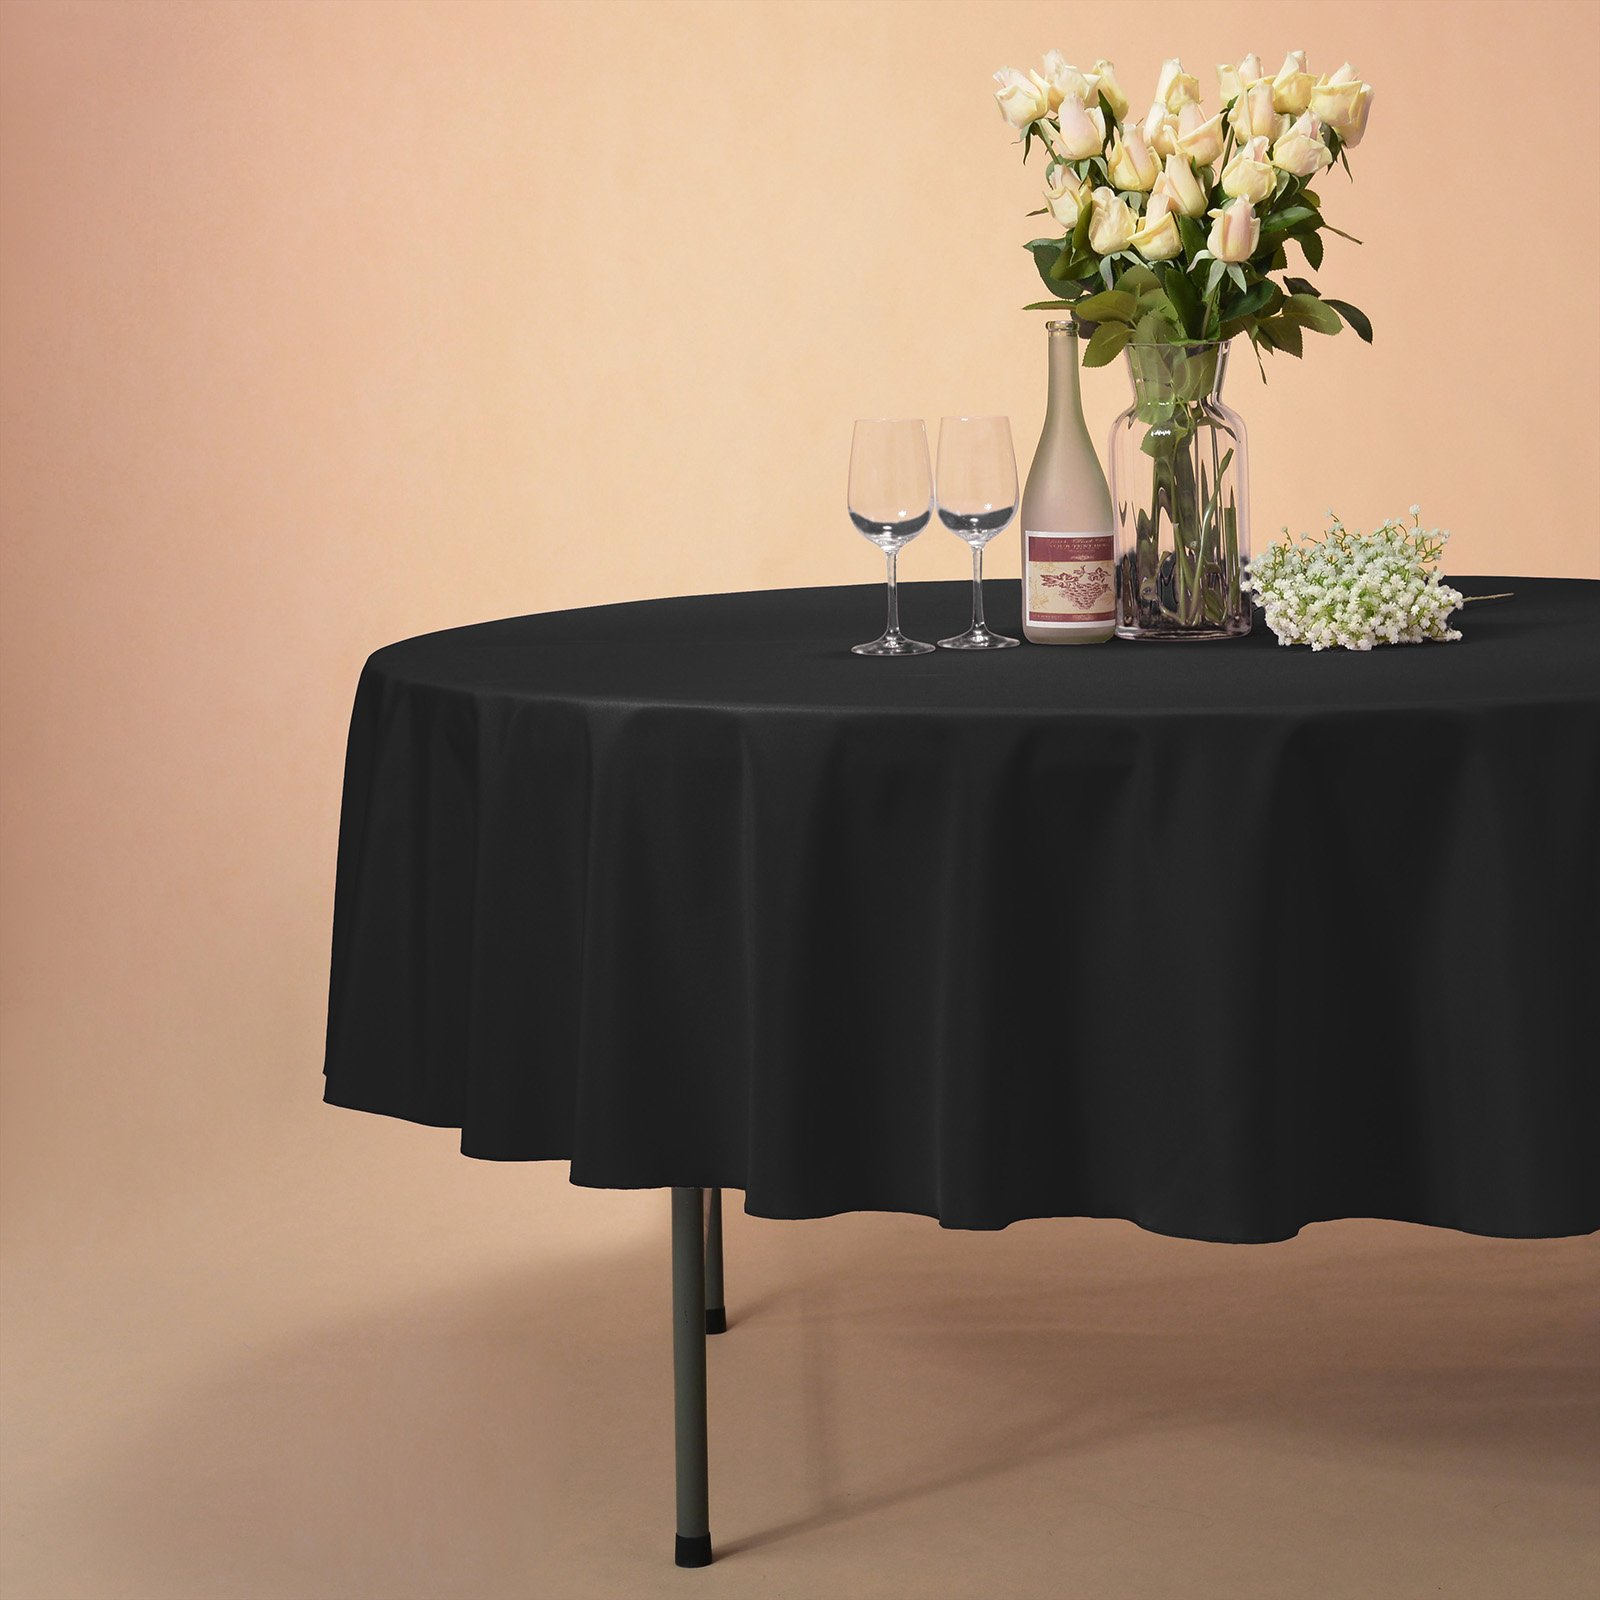 VEEYOO Tablecloth 70 inch Round Solid Polyester Table Cover for Wedding Restaurant Party Picnic Indoor Outdoor Use, Black by VEEYOO (Image #4)